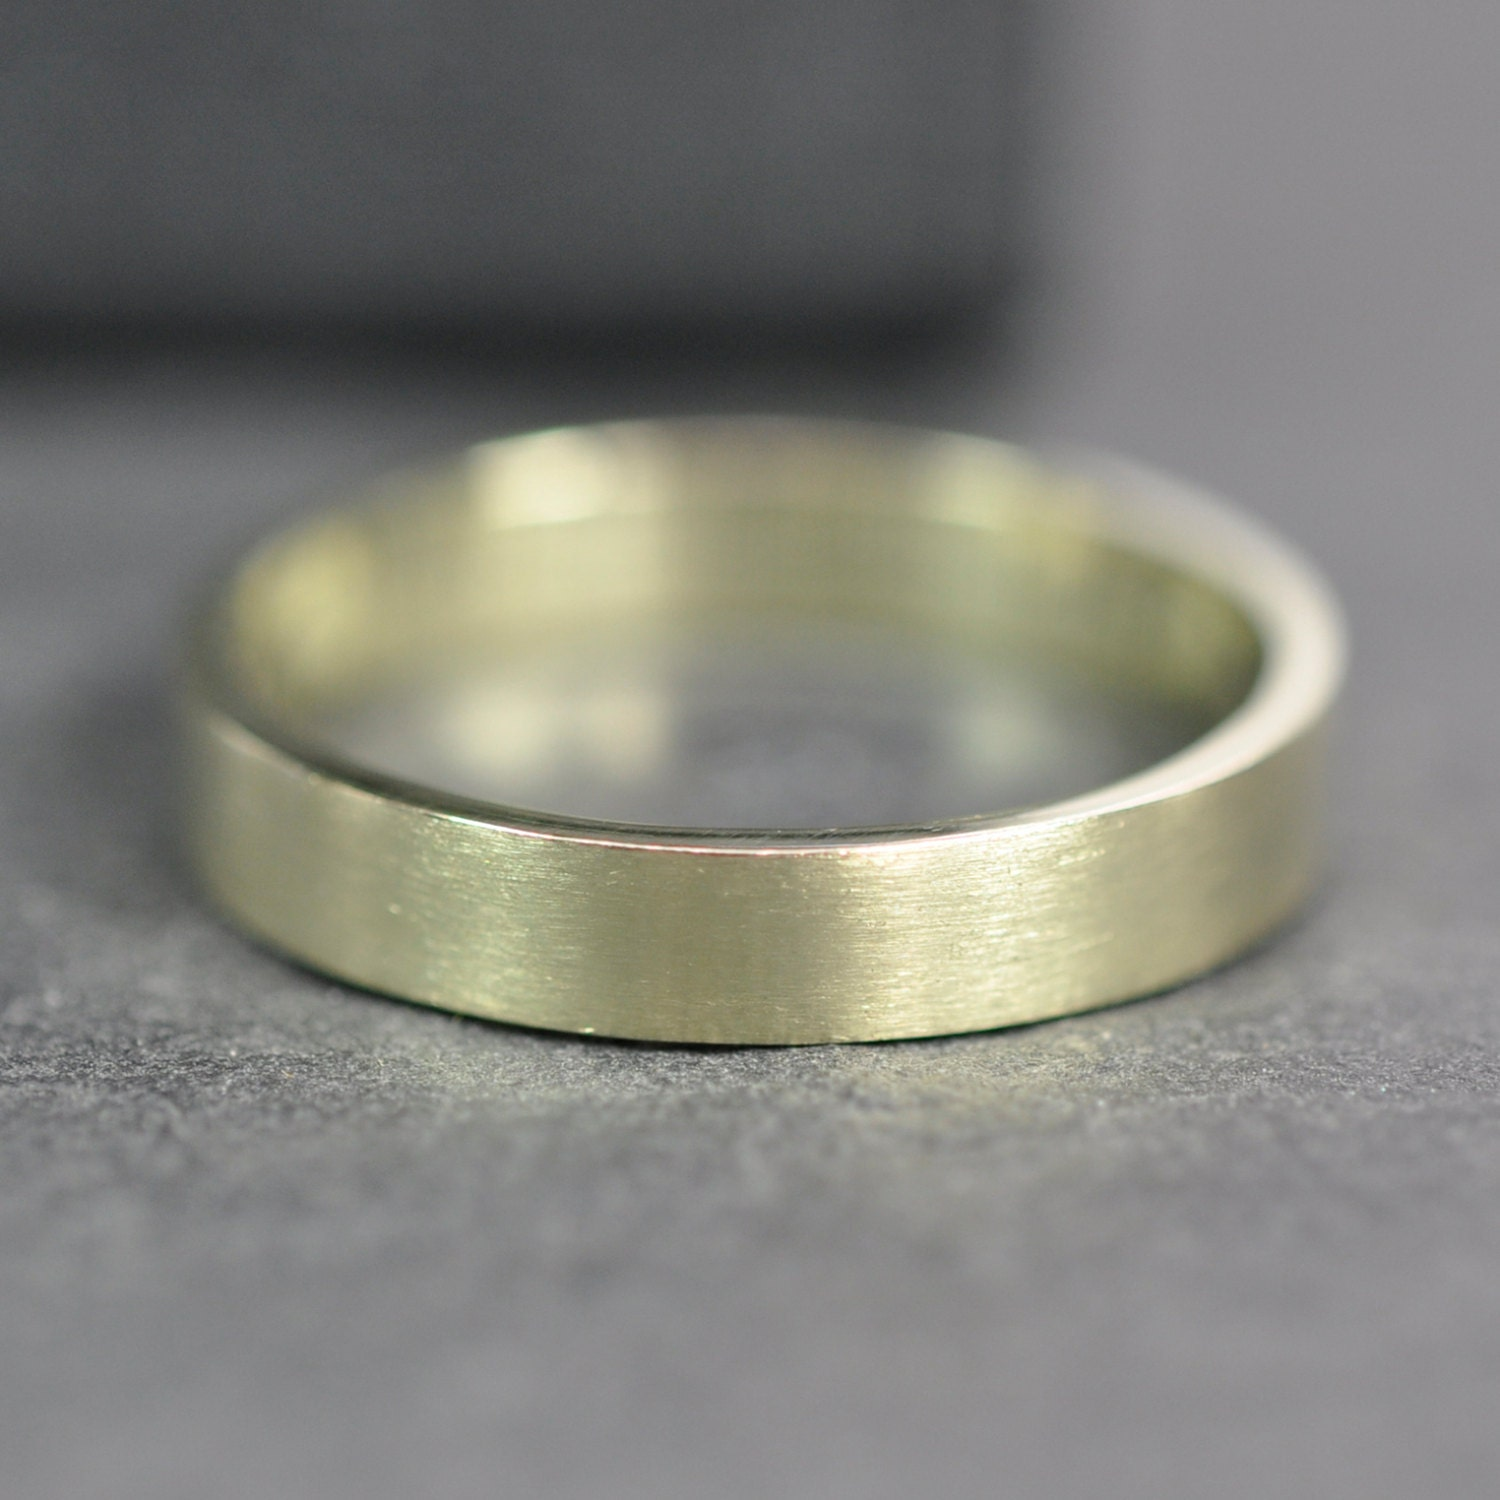 green gold ring 3x1mm flat edge wedding band or fashion ring. Black Bedroom Furniture Sets. Home Design Ideas